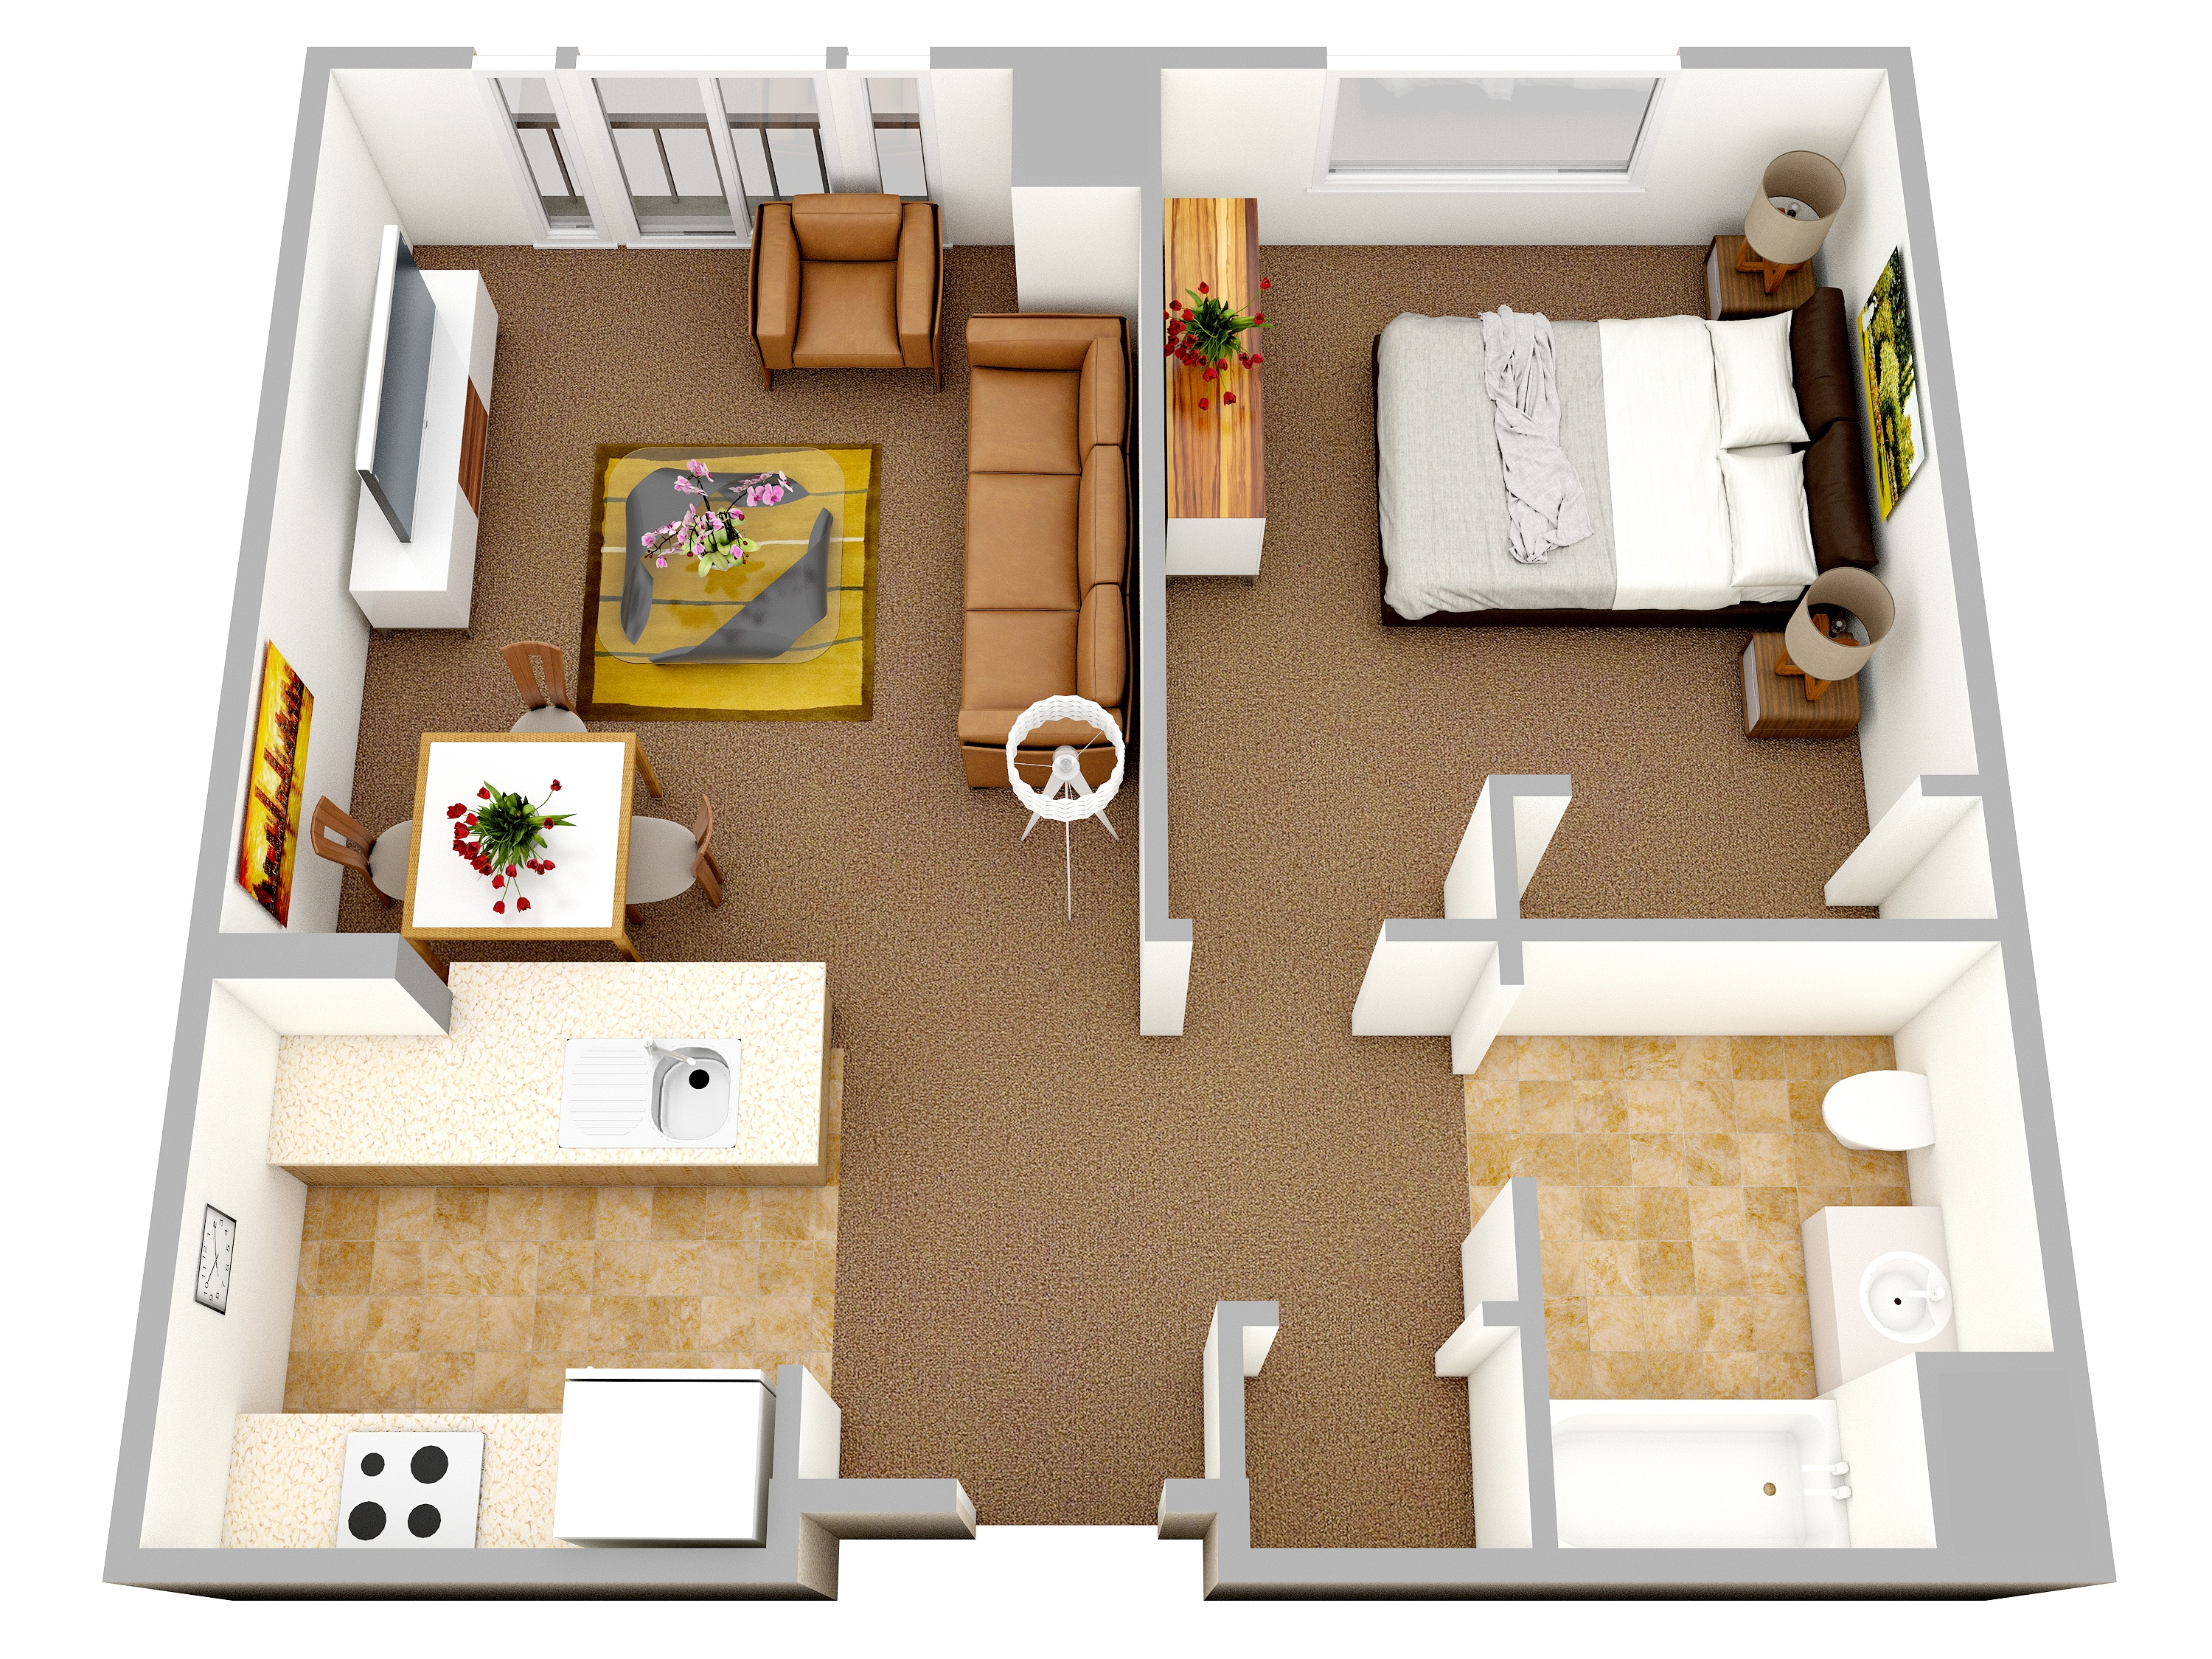 47 planos de apartamentos de 01 dormitorio tikinti for 25x30 house plans